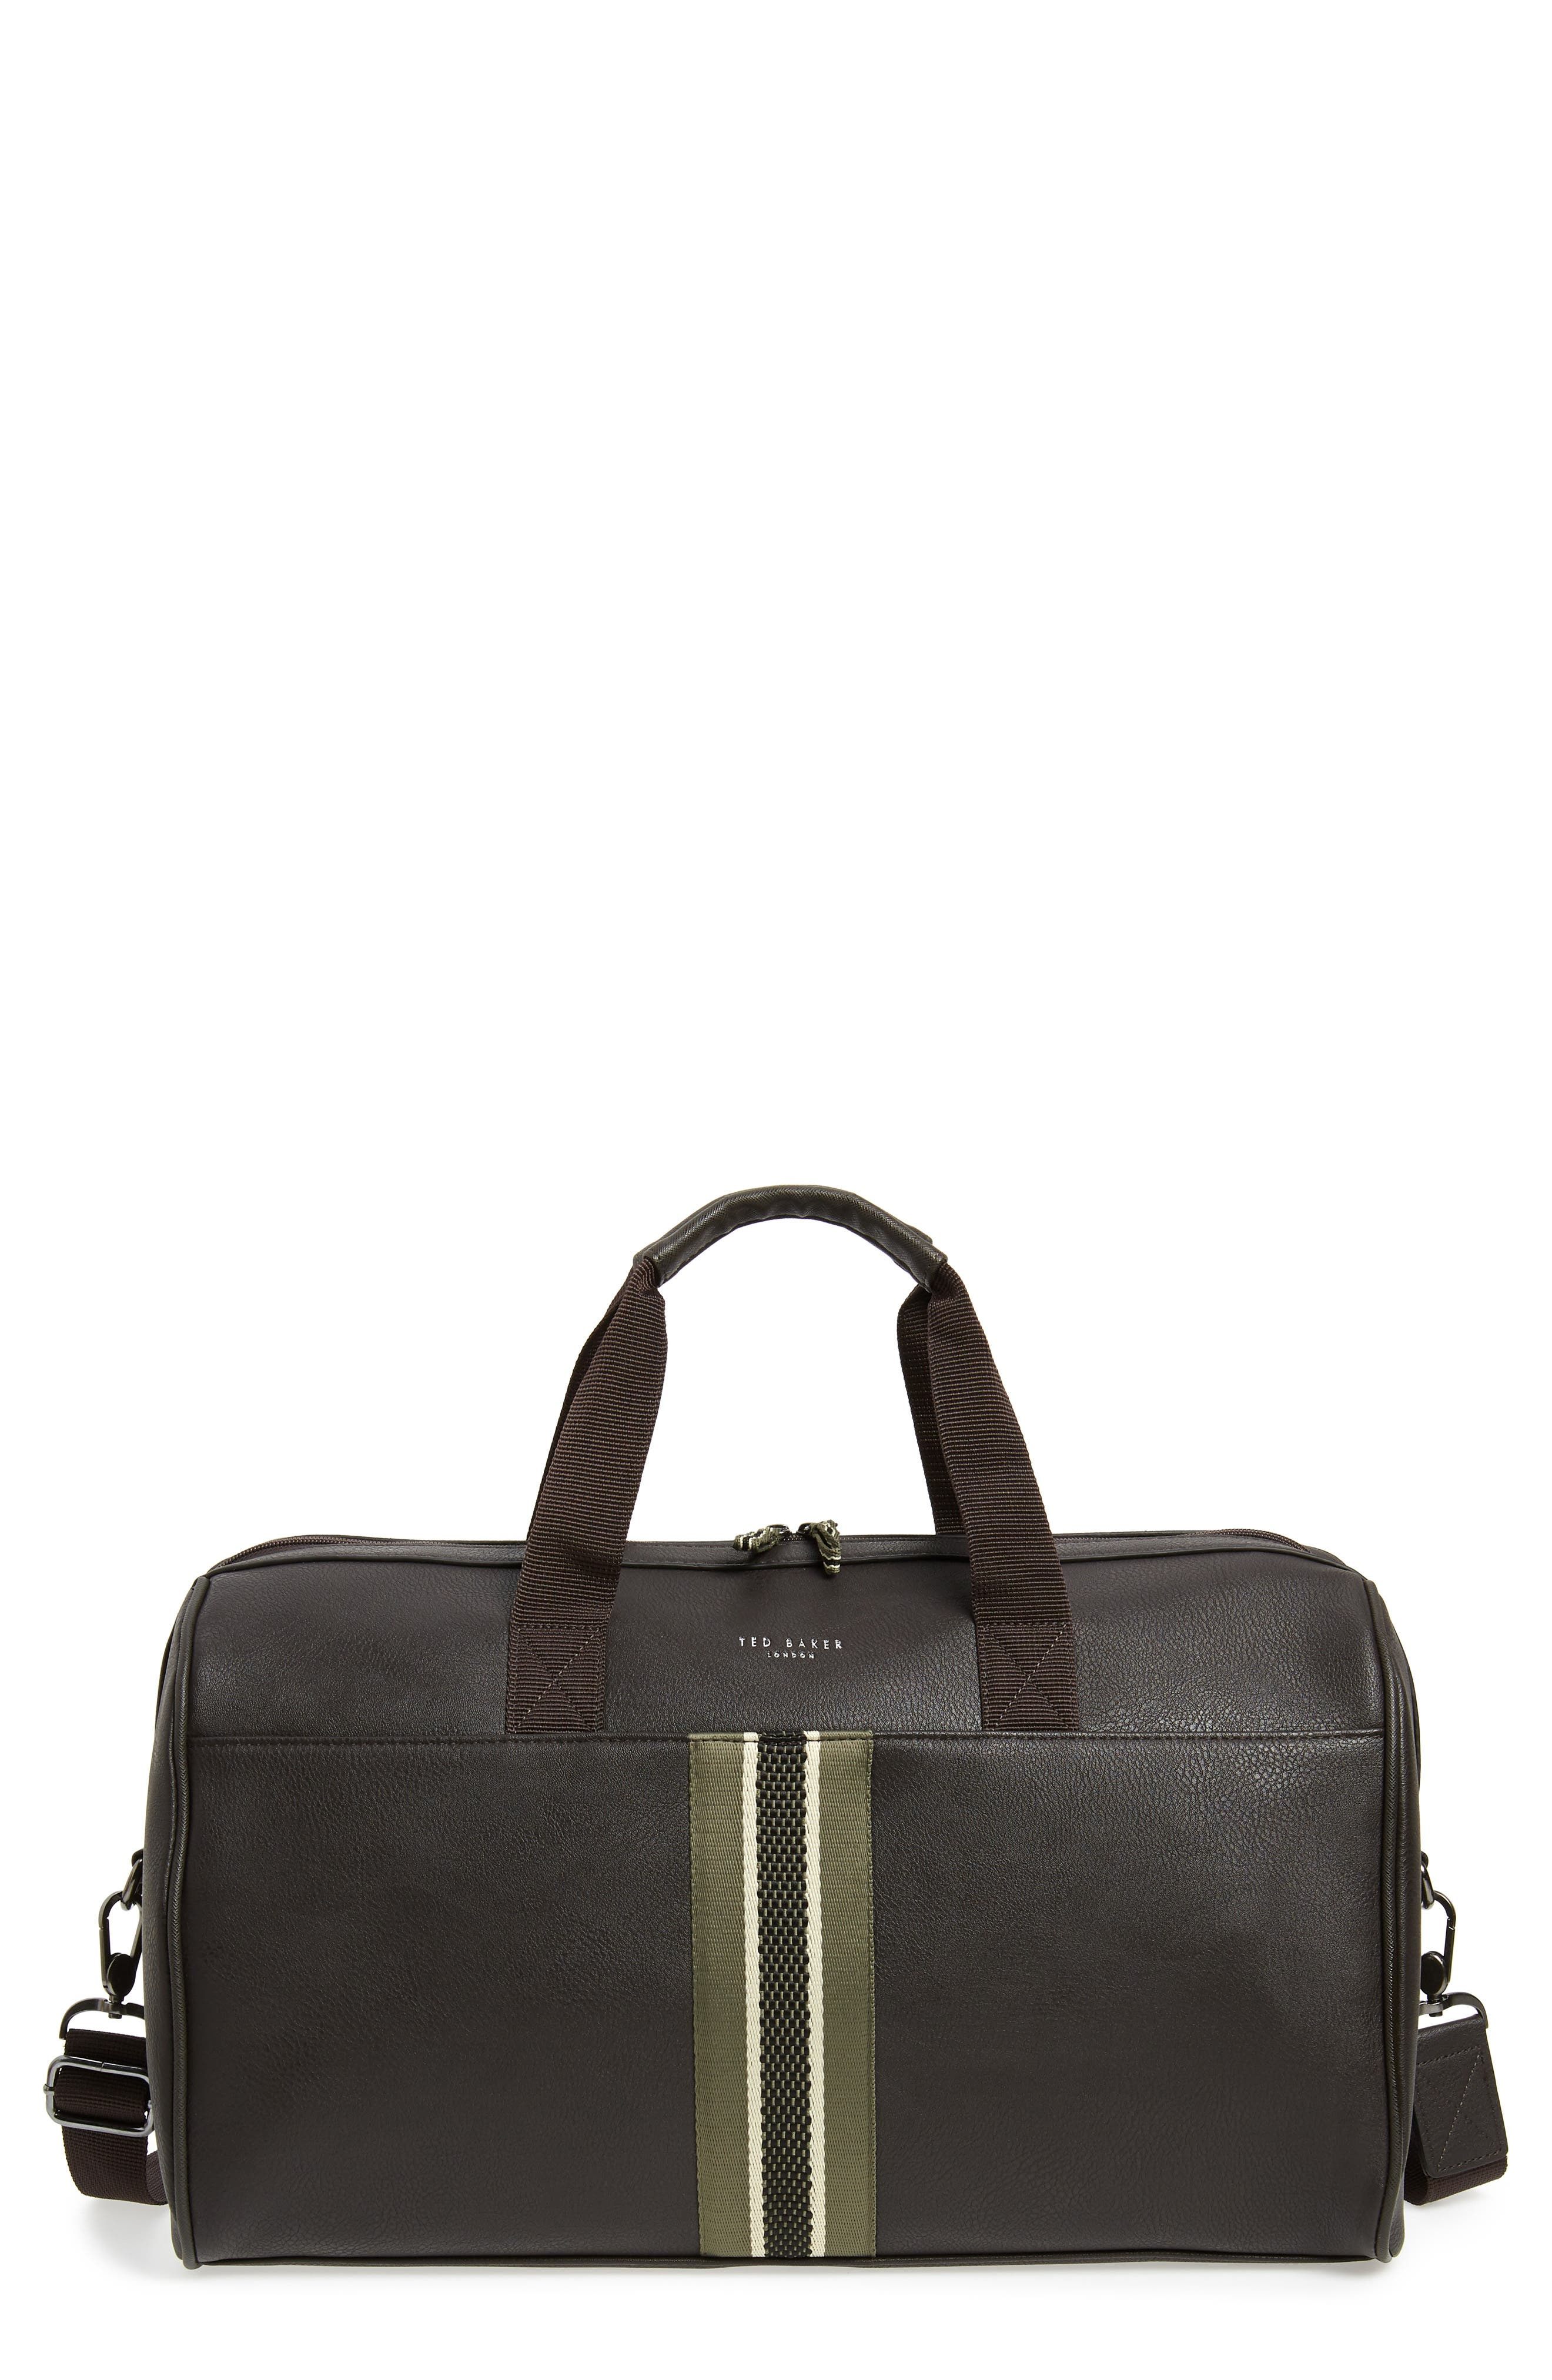 TED BAKER LONDON, Webbing Duffle Bag, Main thumbnail 1, color, CHOCOLATE